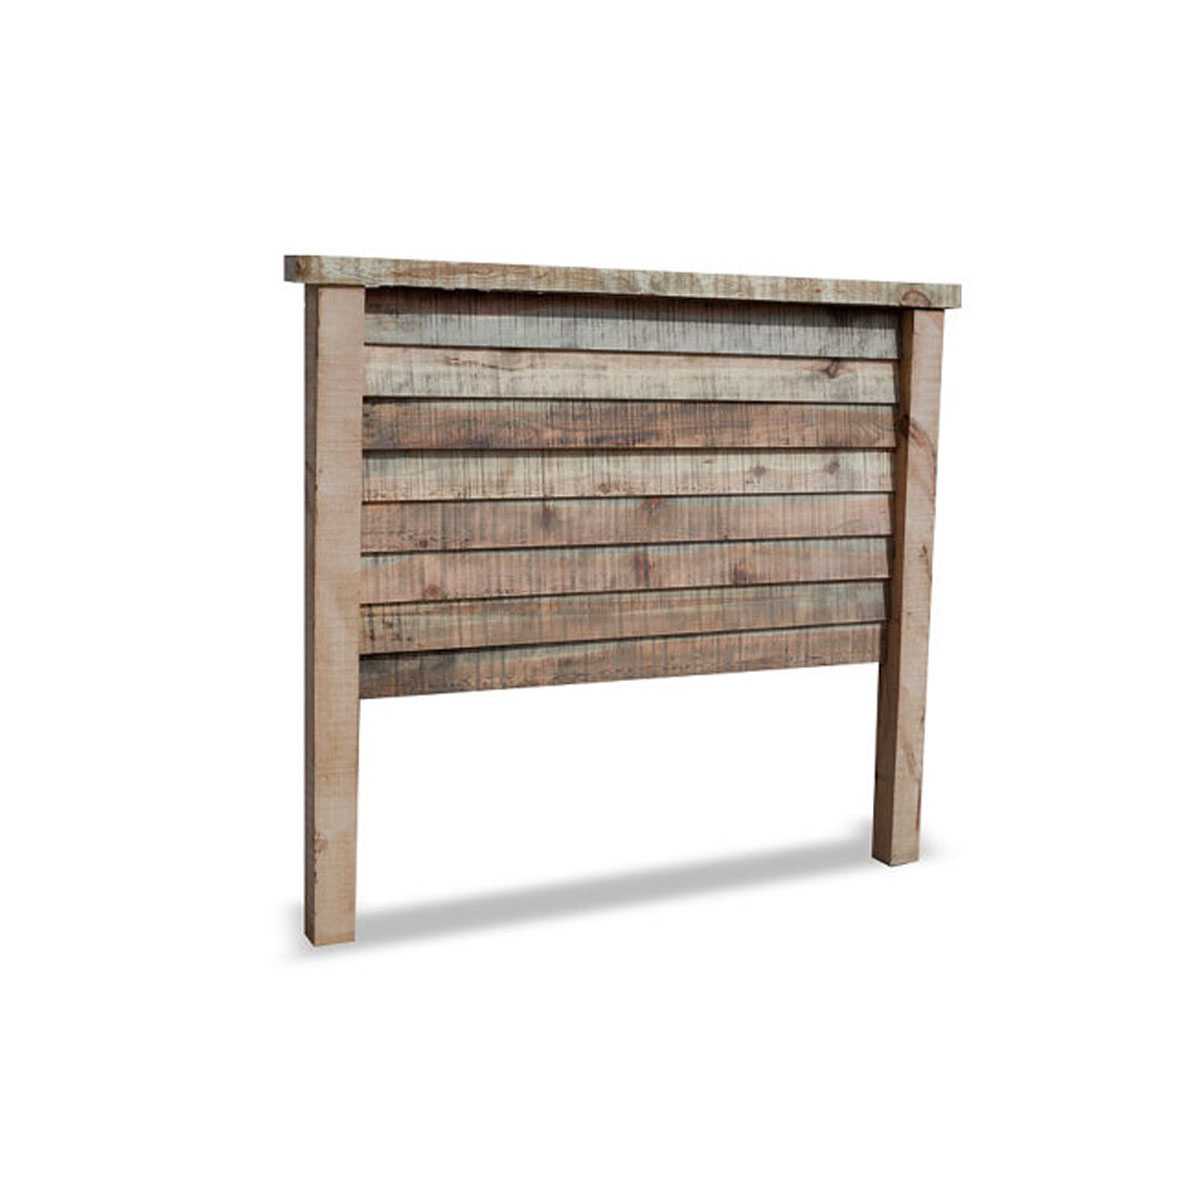 Rustic Furniture And Home Decor